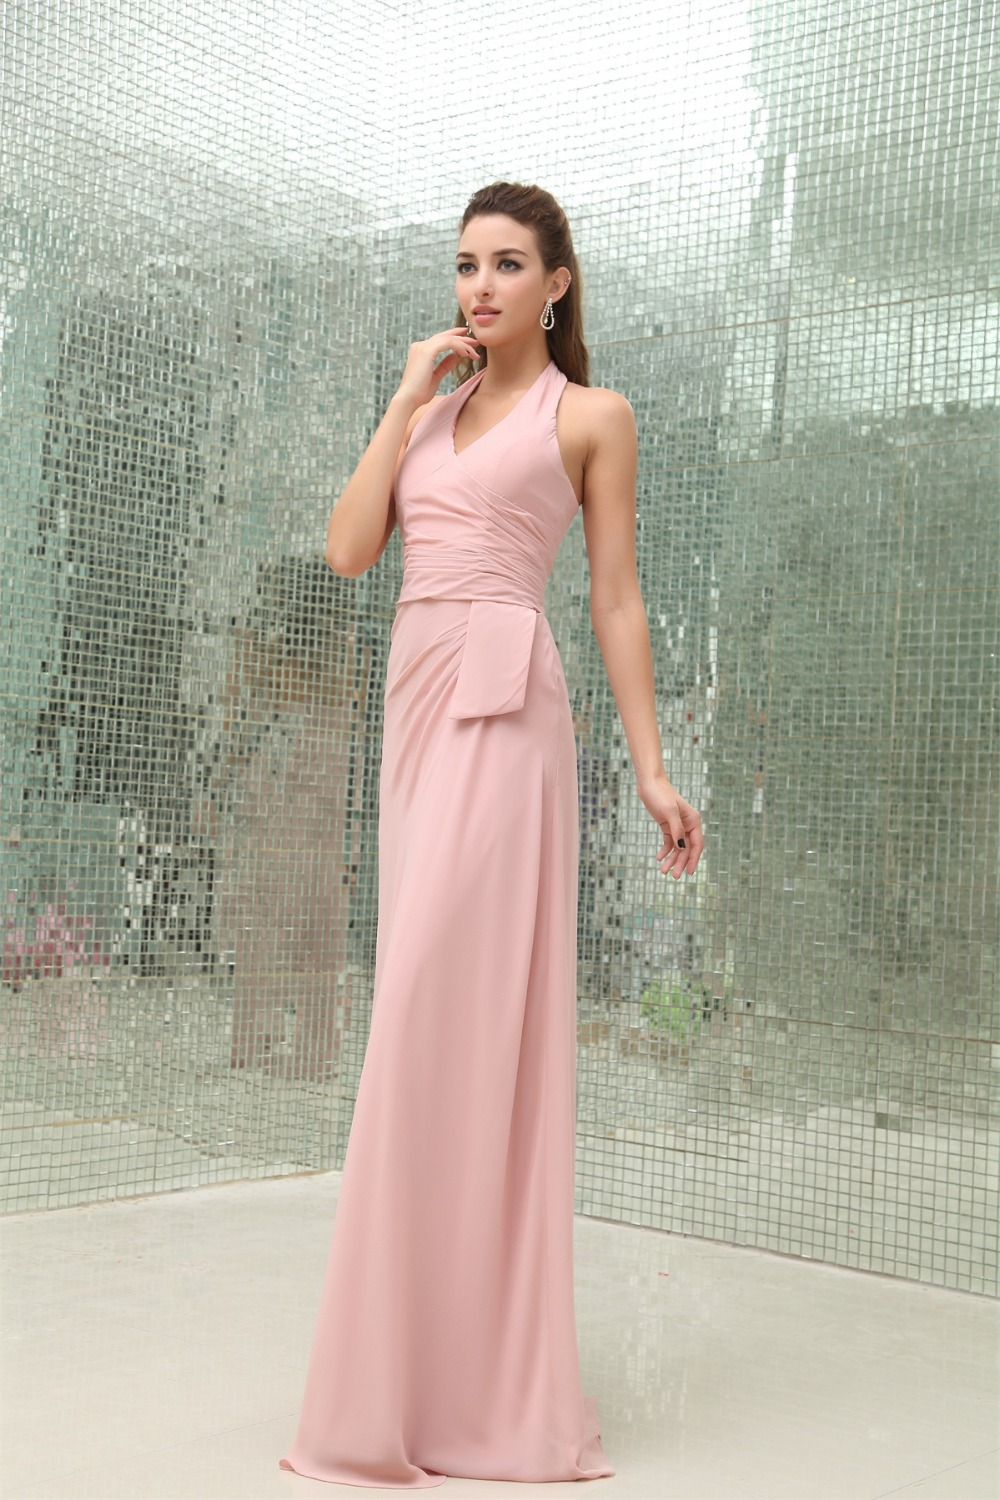 Cheap 2016 blush pink long bridesmaid dresses halter floor length cheap 2016 blush pink long bridesmaid dresses halter floor length chiffon maid of honor gowns in bridesmaid dresses from weddings events on aliexpress ombrellifo Image collections